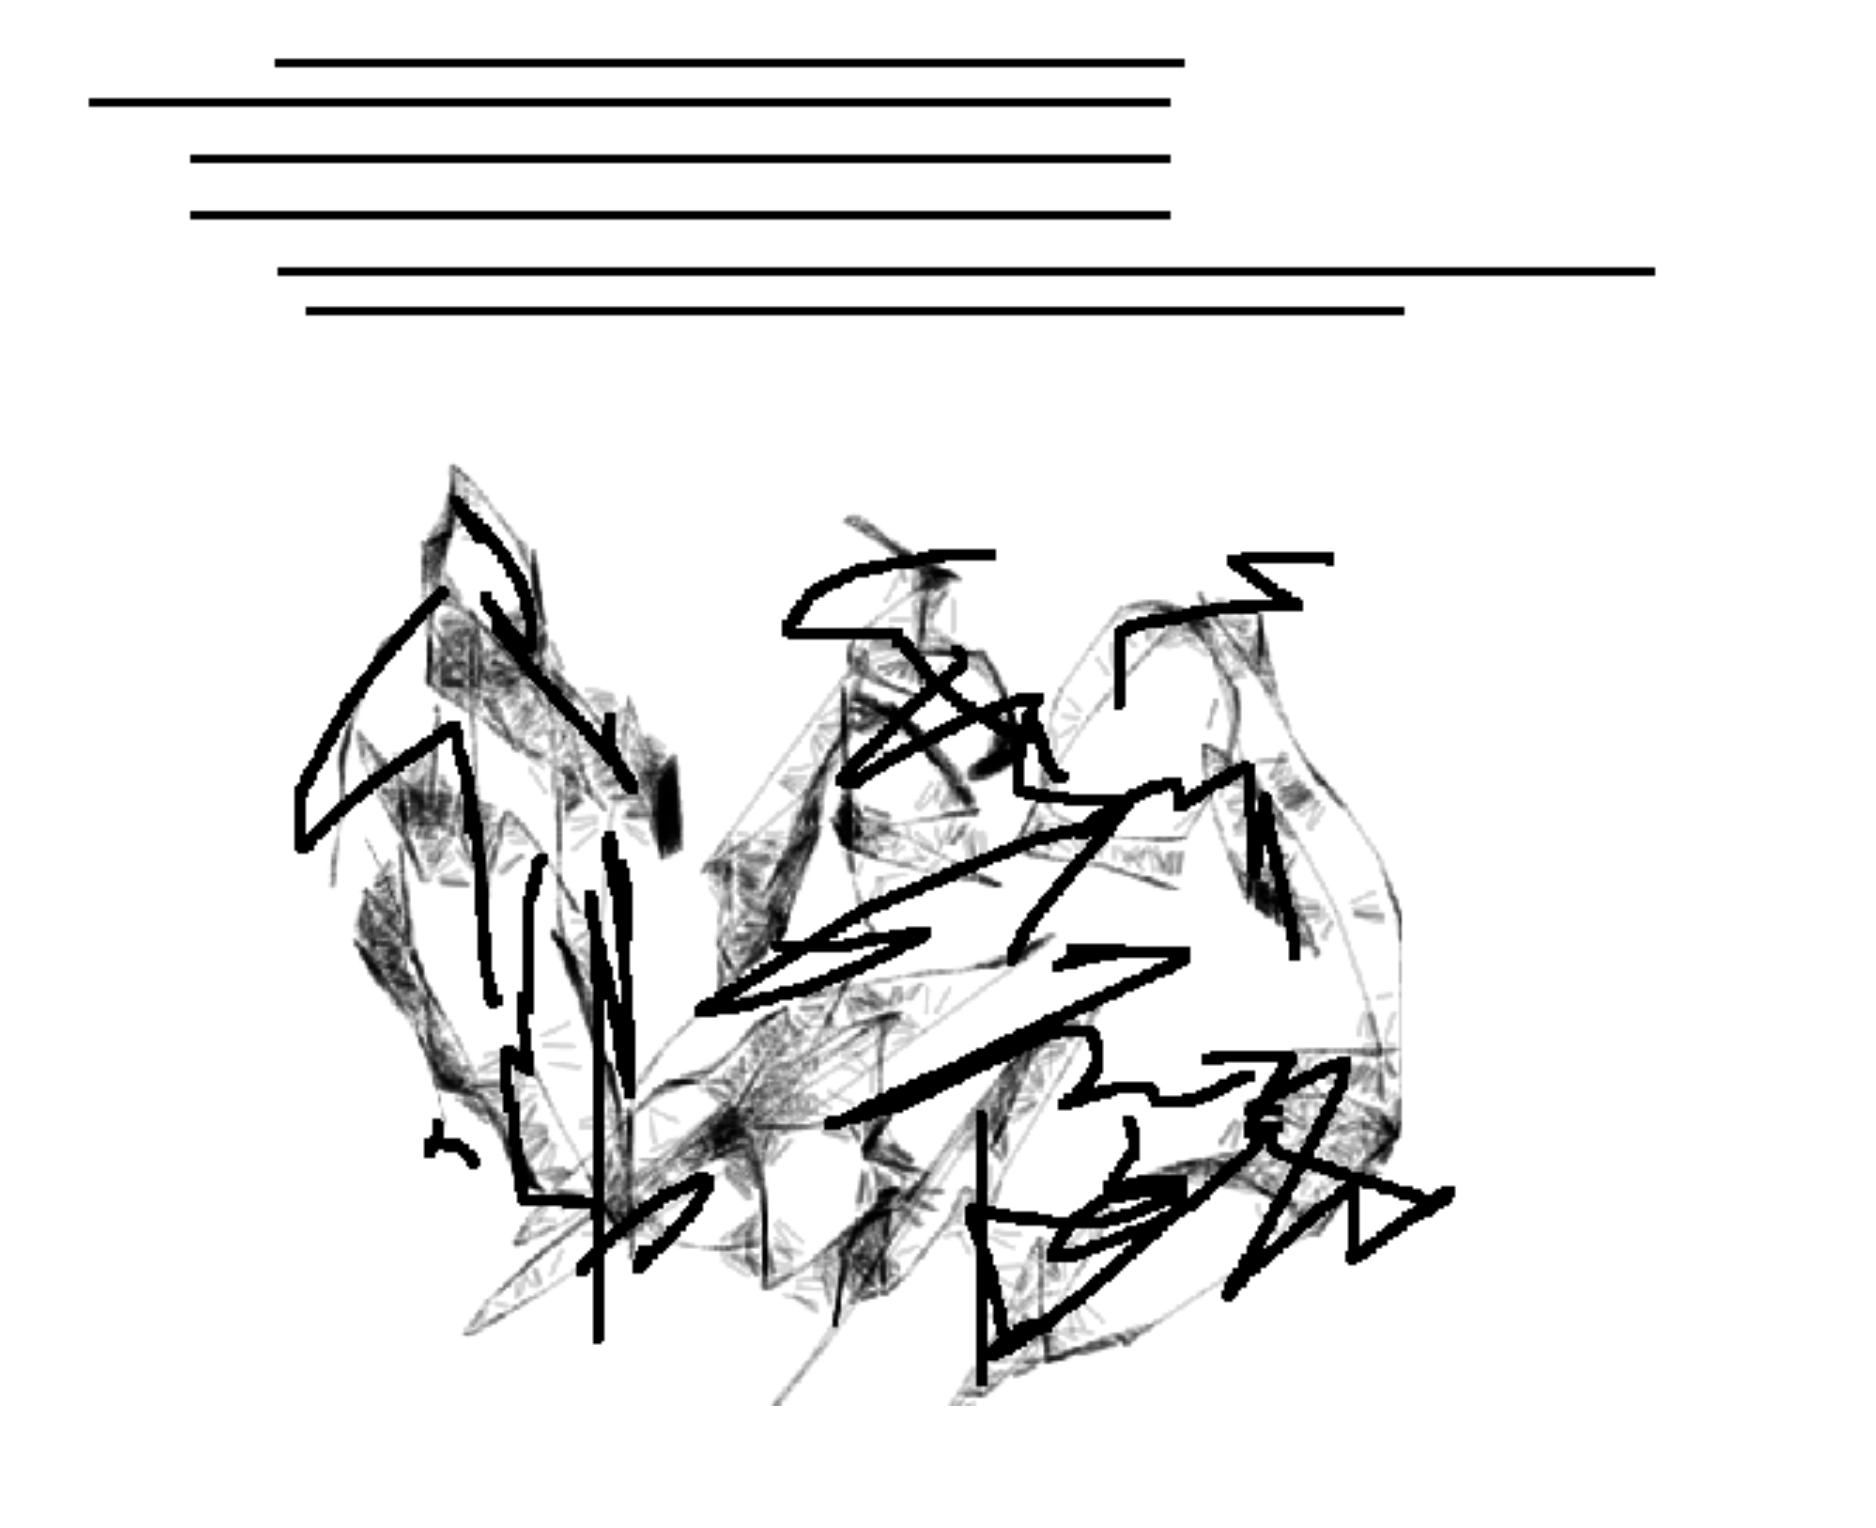 Example 8. A line drawing and its impression; from Haviland 1993:22